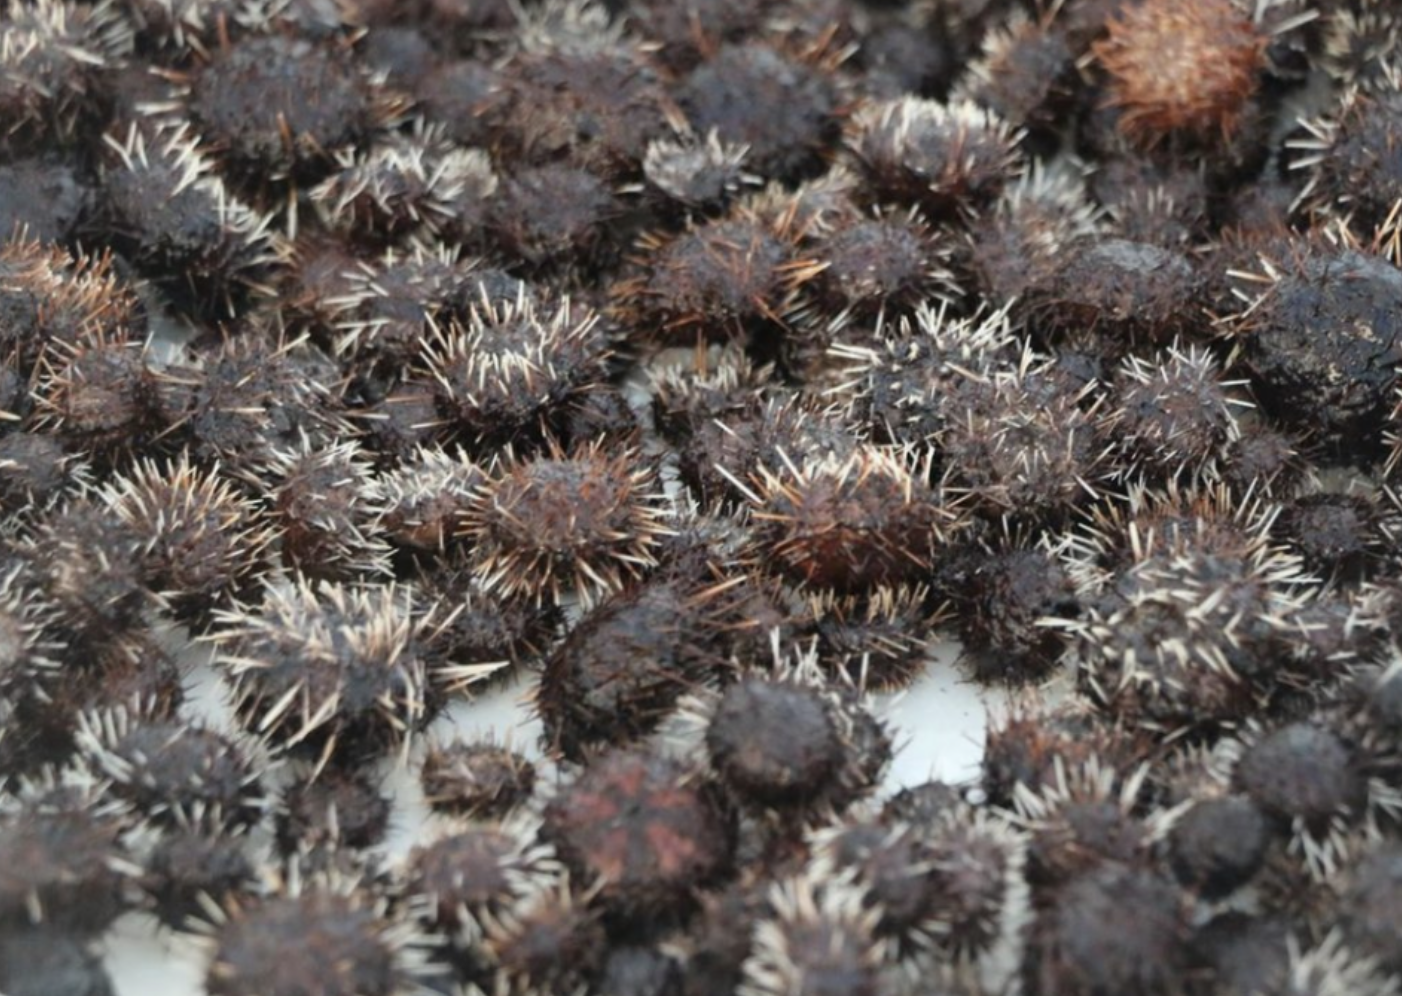 """Conserving Hawai'i's Reefs Through Sea Urchin Aquaculture"" Free Presentation, May 12"